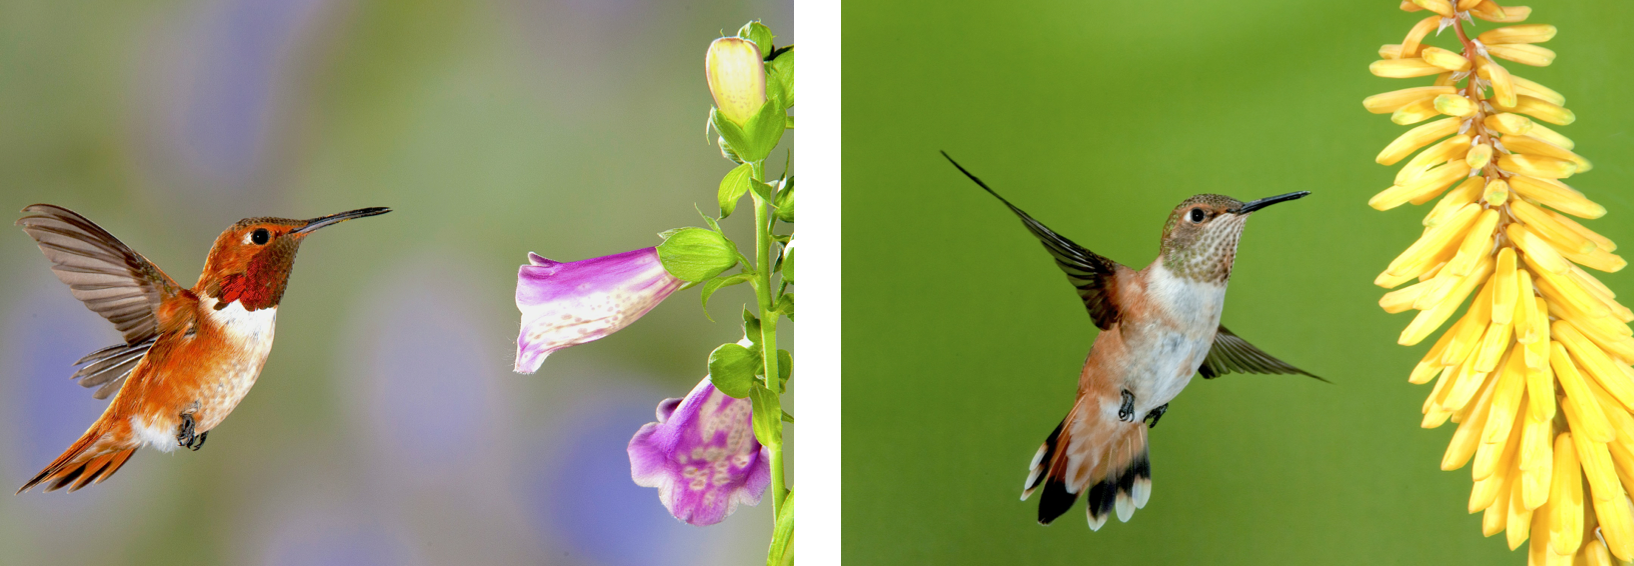 Rufous Hummingbird Identification All About Birds